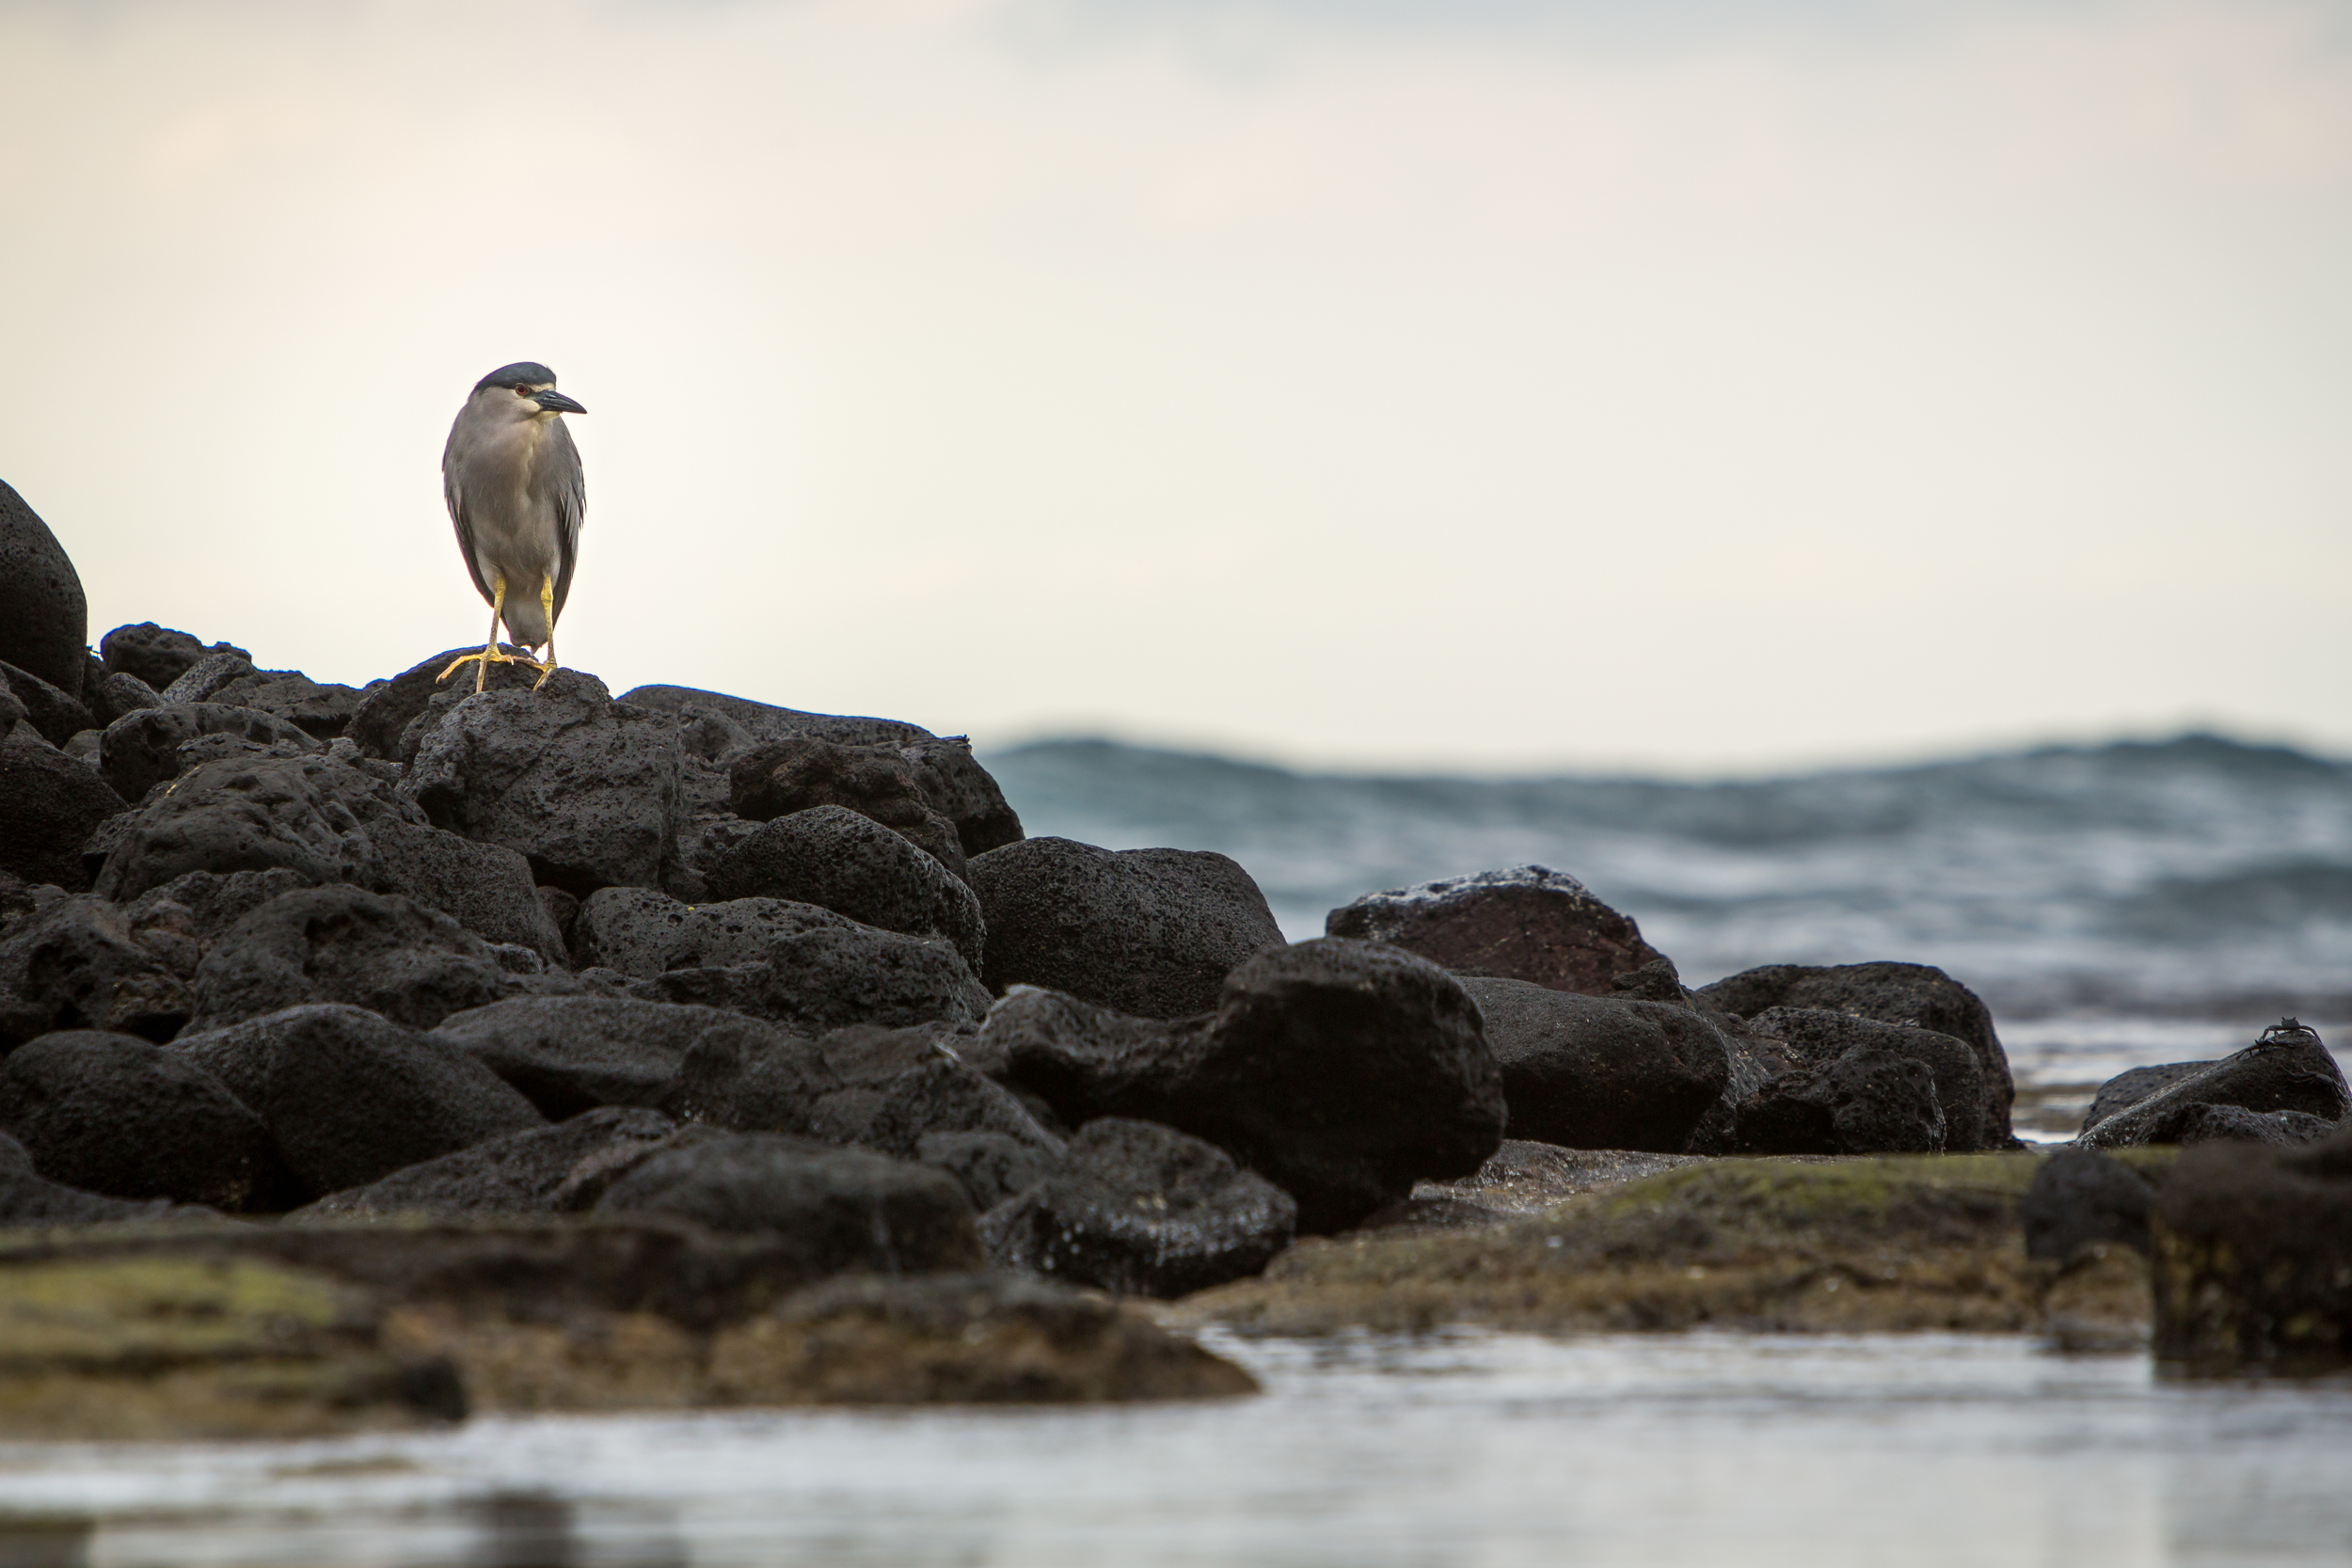 Black-Crowned Night-Heron - Nycticorax nycticorax (native)